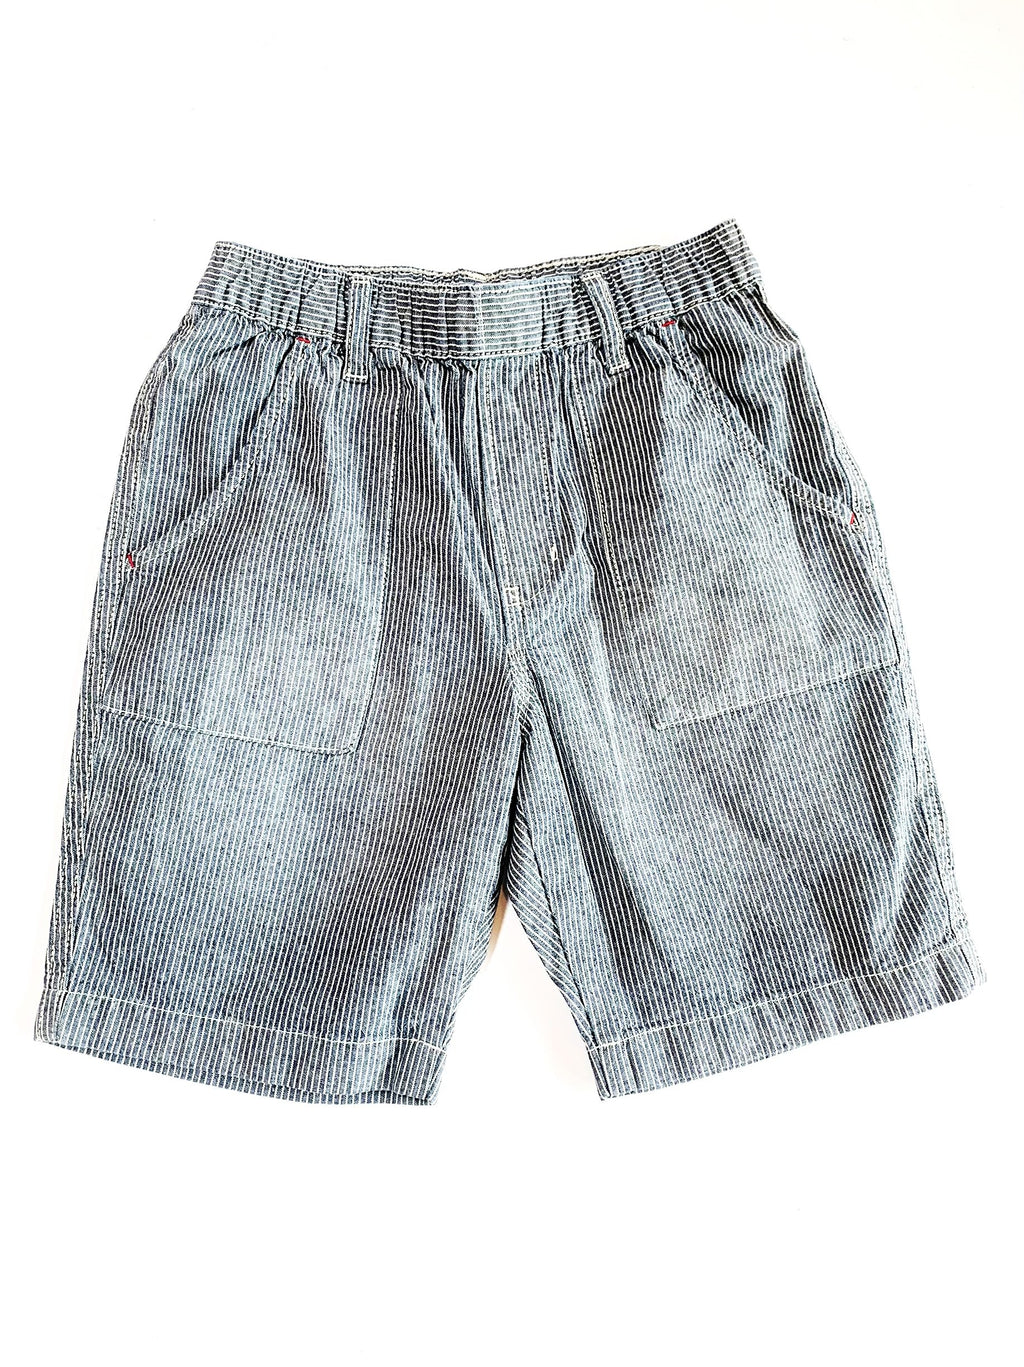 Uniqlo shorts size large-Fresh Kids Inc.